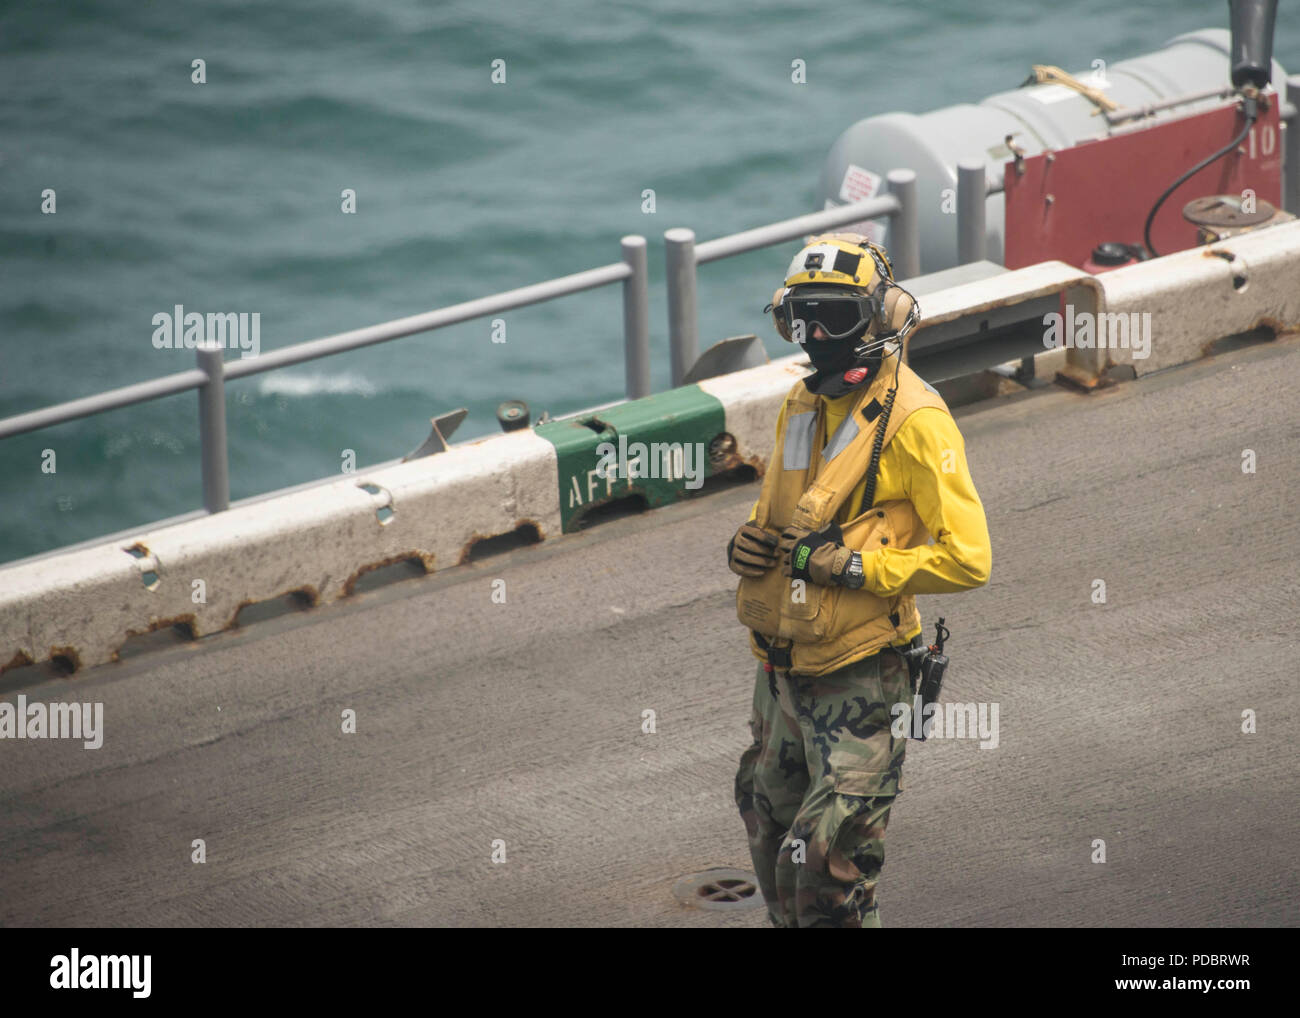 180803-N-ZG607-0041  ATLANTIC OCEAN (Aug. 3, 2018) A landing signalman, enlisted, lands aircraft on the flight deck of the Wasp-class amphibious assault ship USS Iwo Jima (LHD 7), Aug. 3, 2018. Iwo Jima is deployed with its amphibious ready group in support of maritime security operations and theatre security cooperation efforts in Europe and the Middle East. (U.S. Navy photo by Mass Communication Specialist 3rd Class Dominick A. Cremeans/Released) Stock Photo